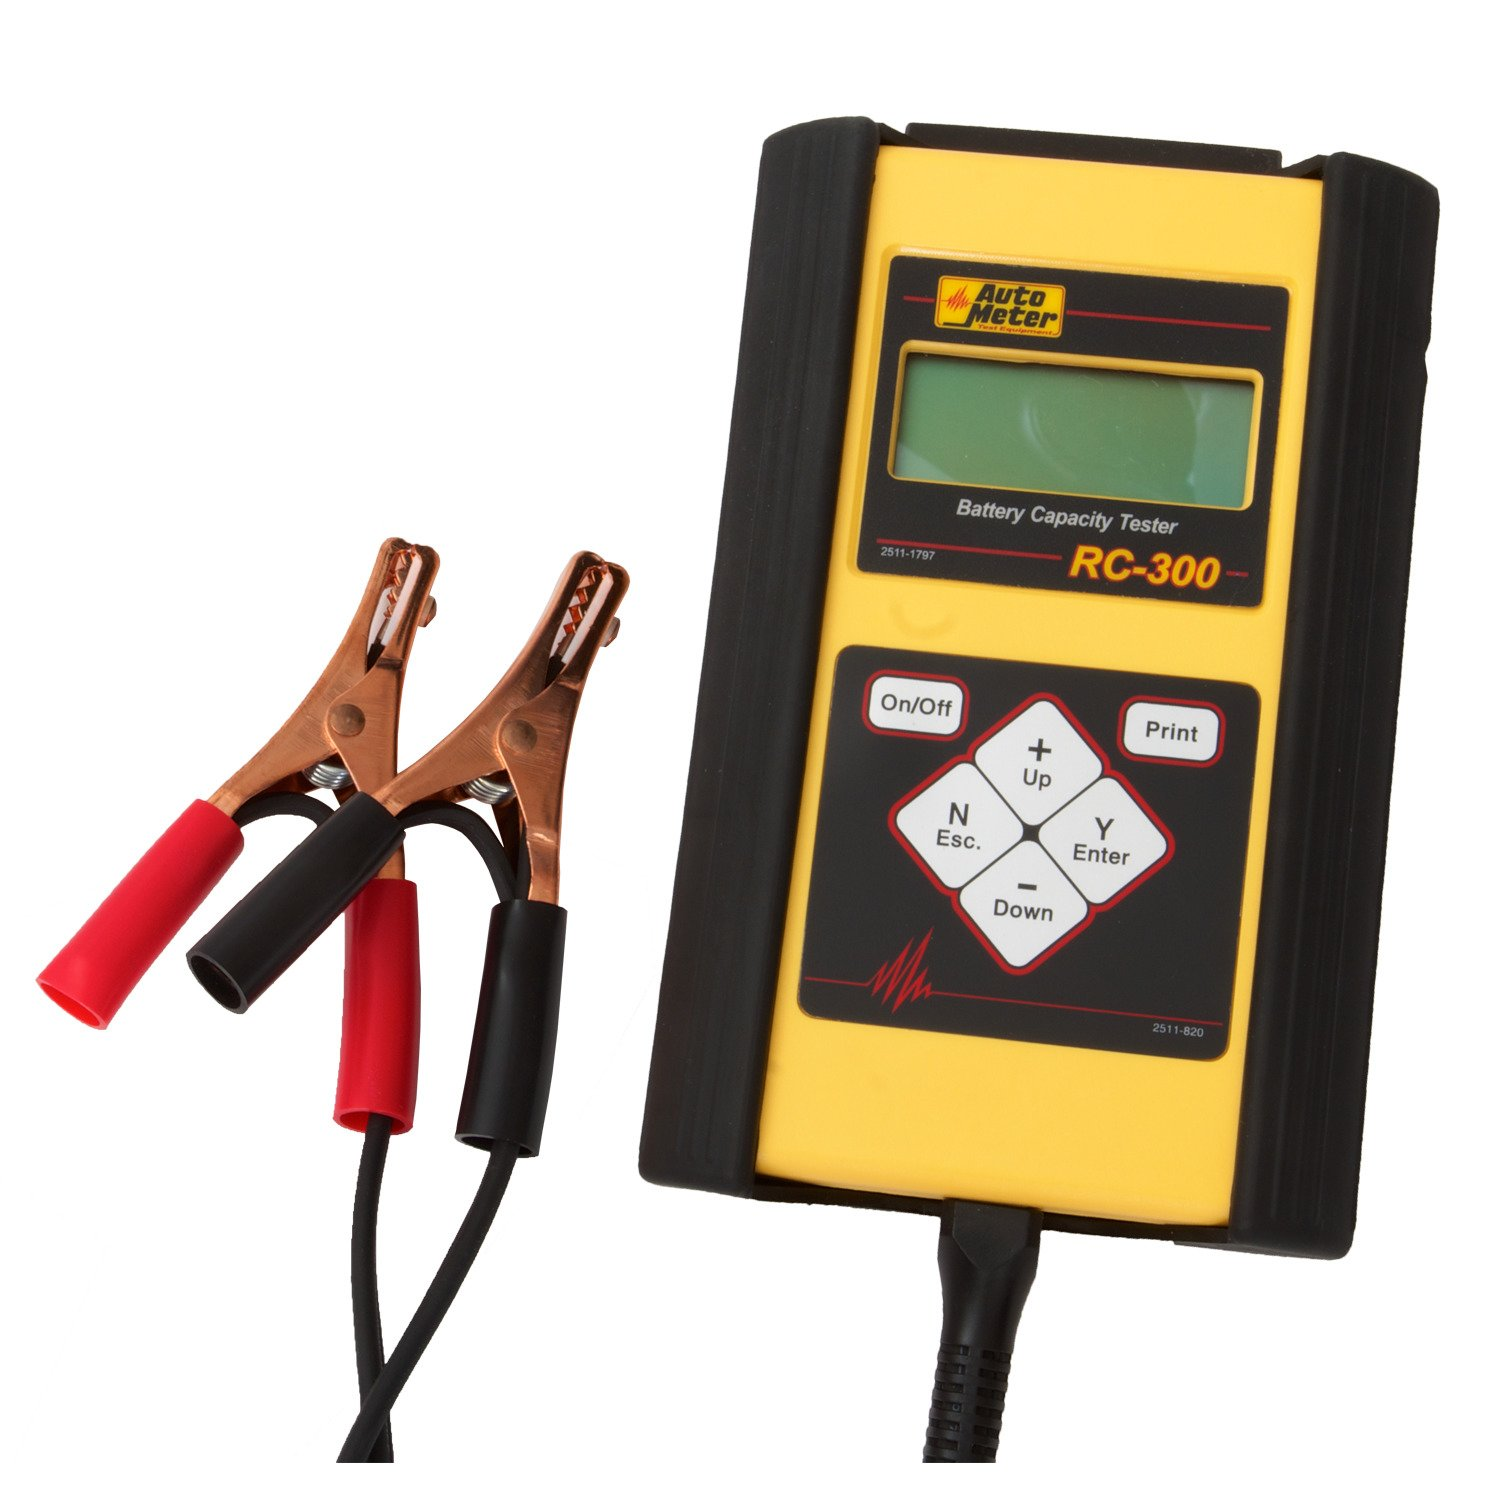 2 Battery Tester : Auto meter rc battery tester for v applications